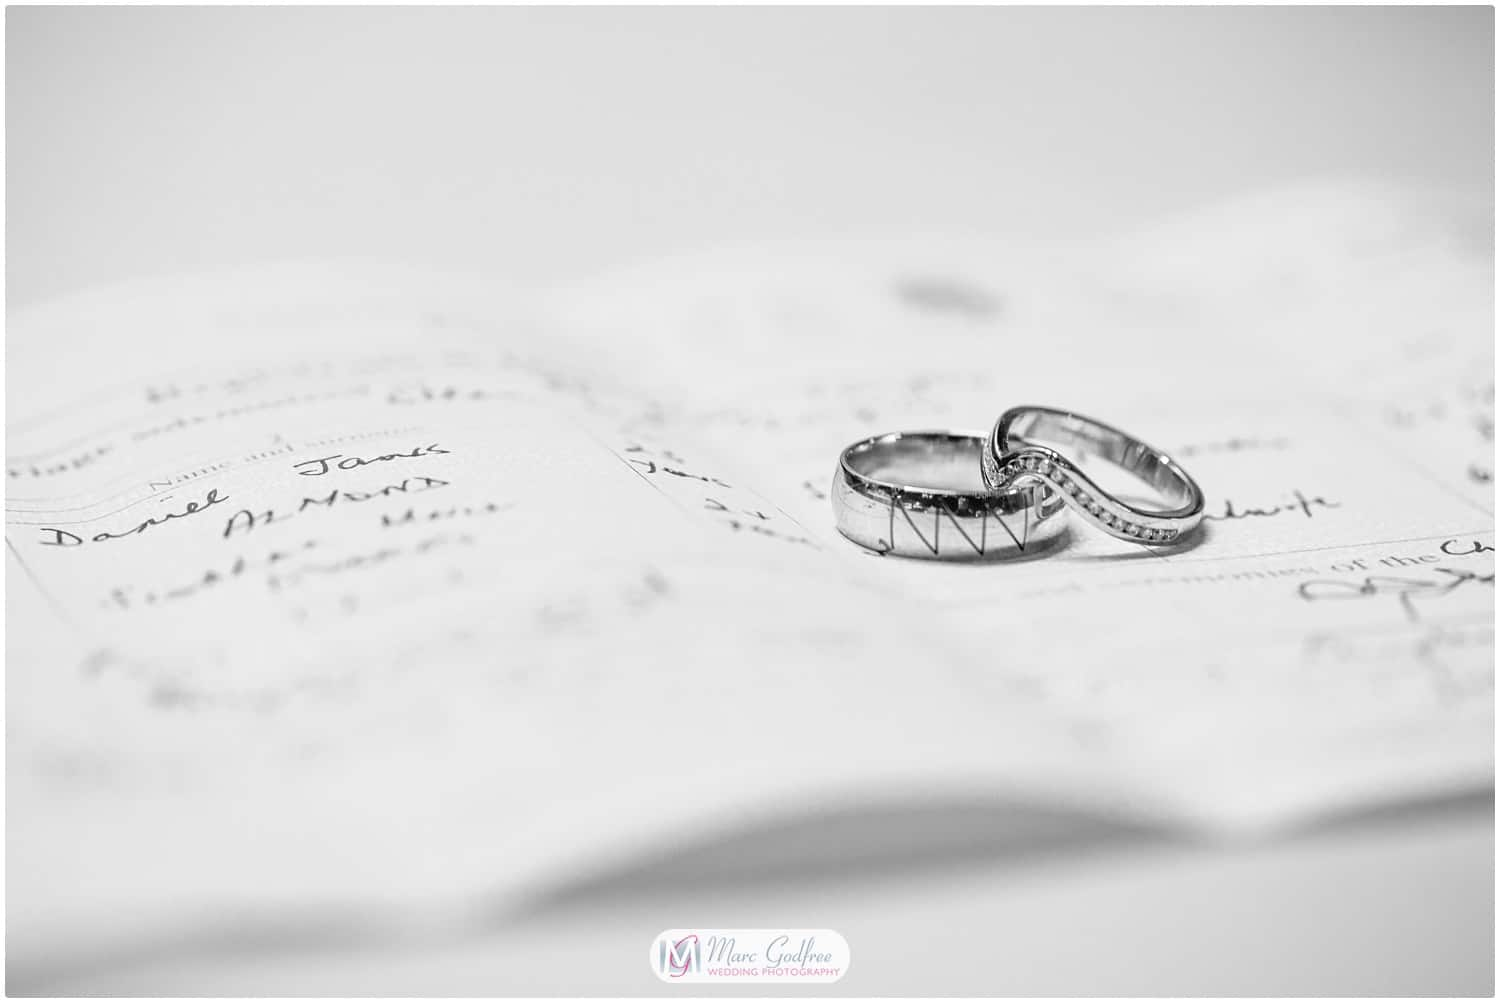 Marriage Certficate-2